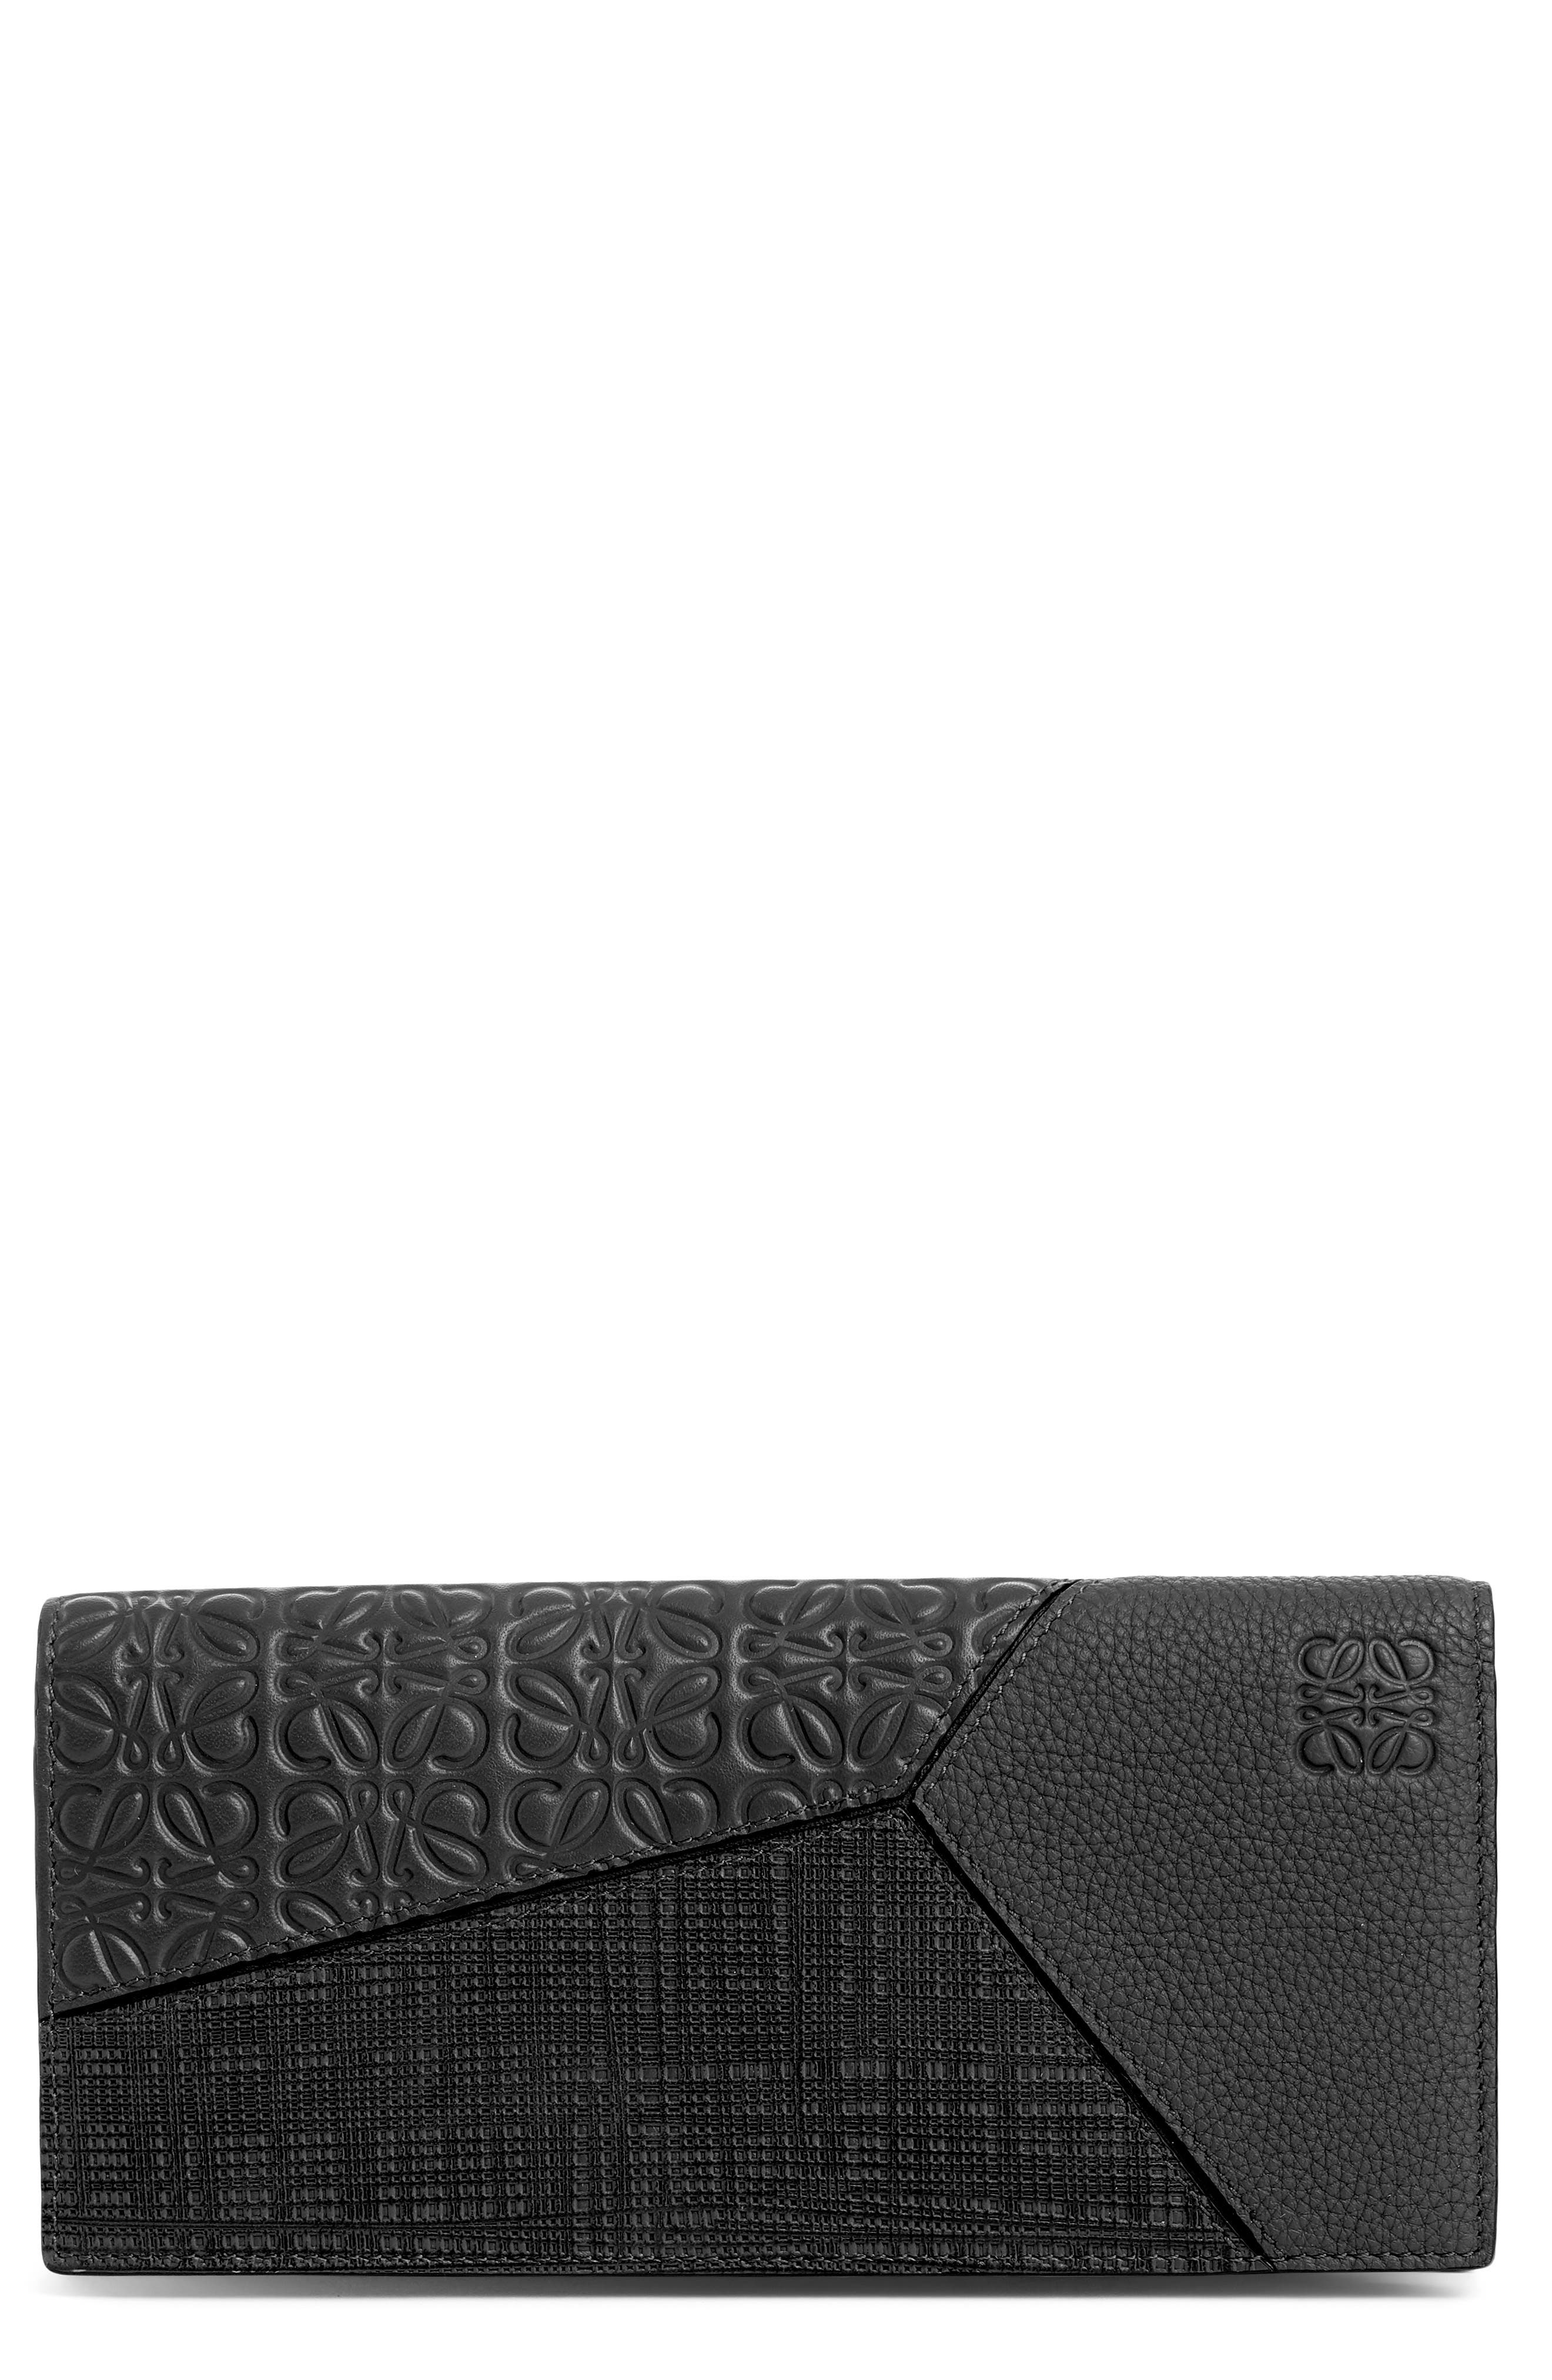 LOEWE Long Puzzle Bifold Leather Wallet, Main, color, BLACK